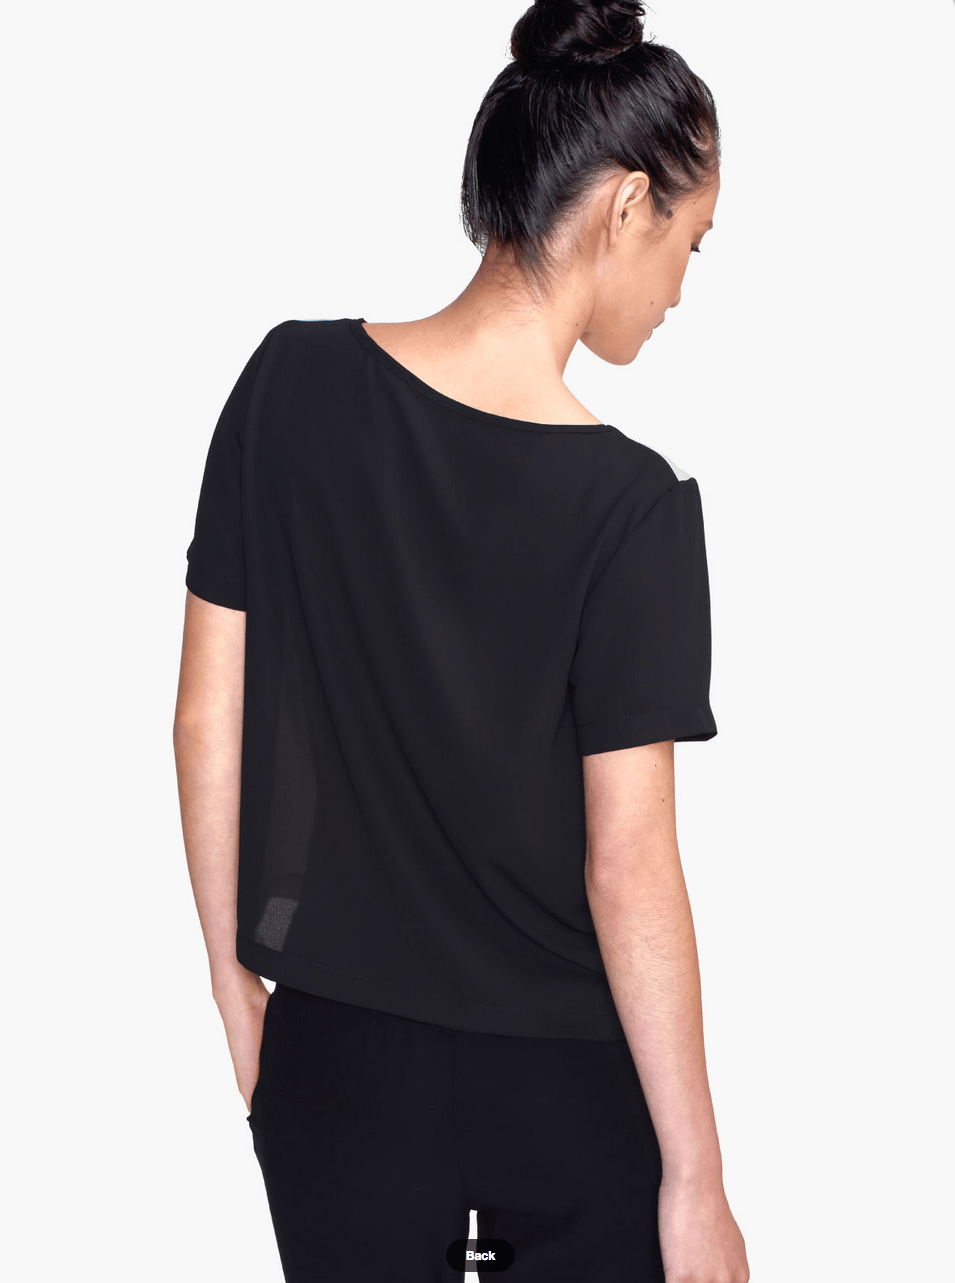 Woman Top - Chiffon Tops - Original Clothing for Girls-TheGretest